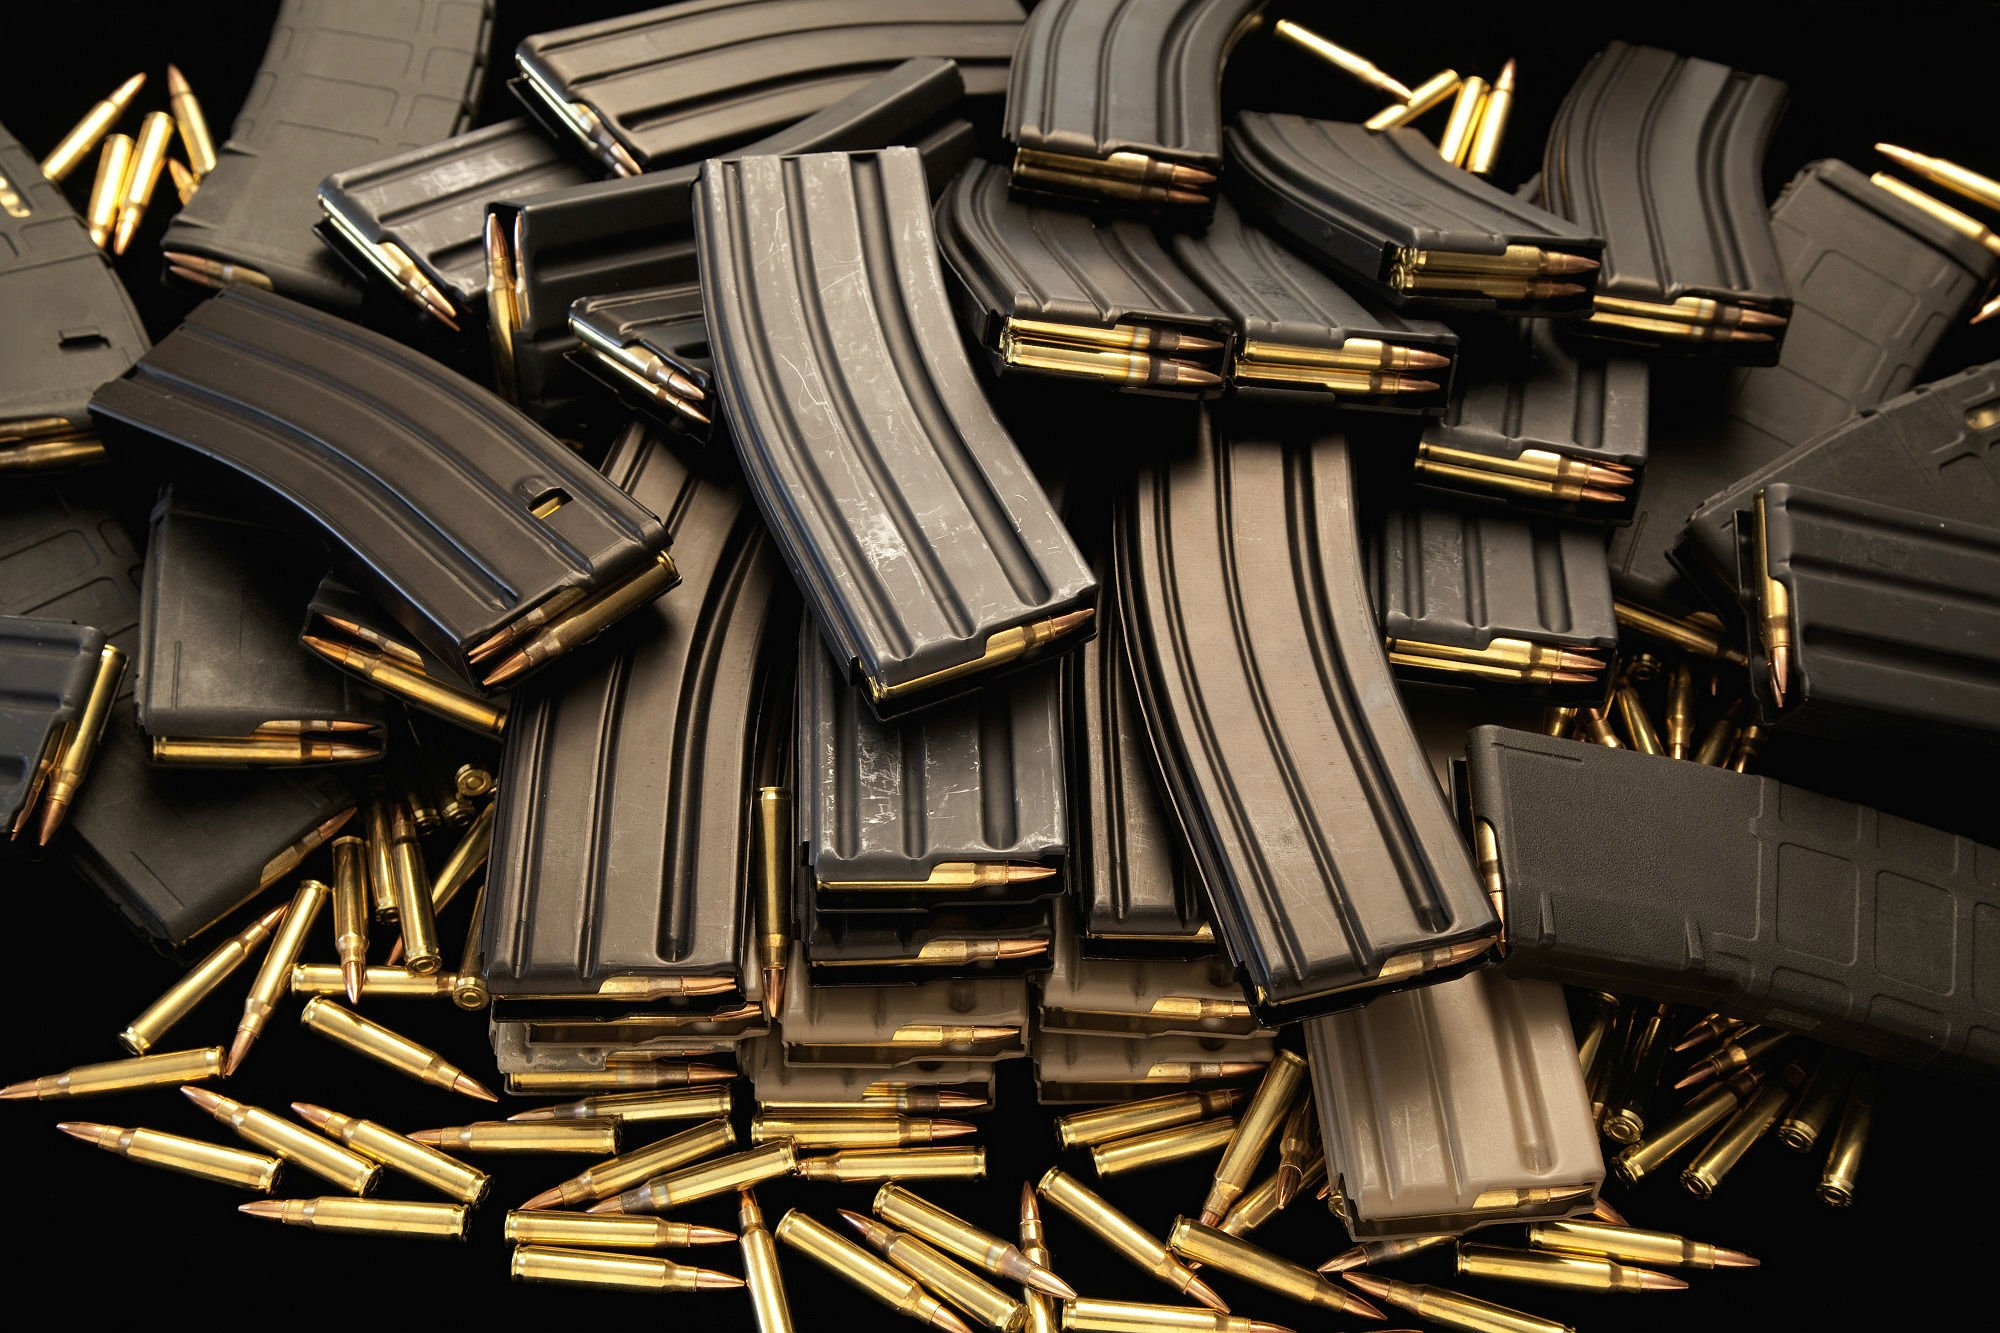 Gun Ammo Wallpaper Guns Ammo Ammunition